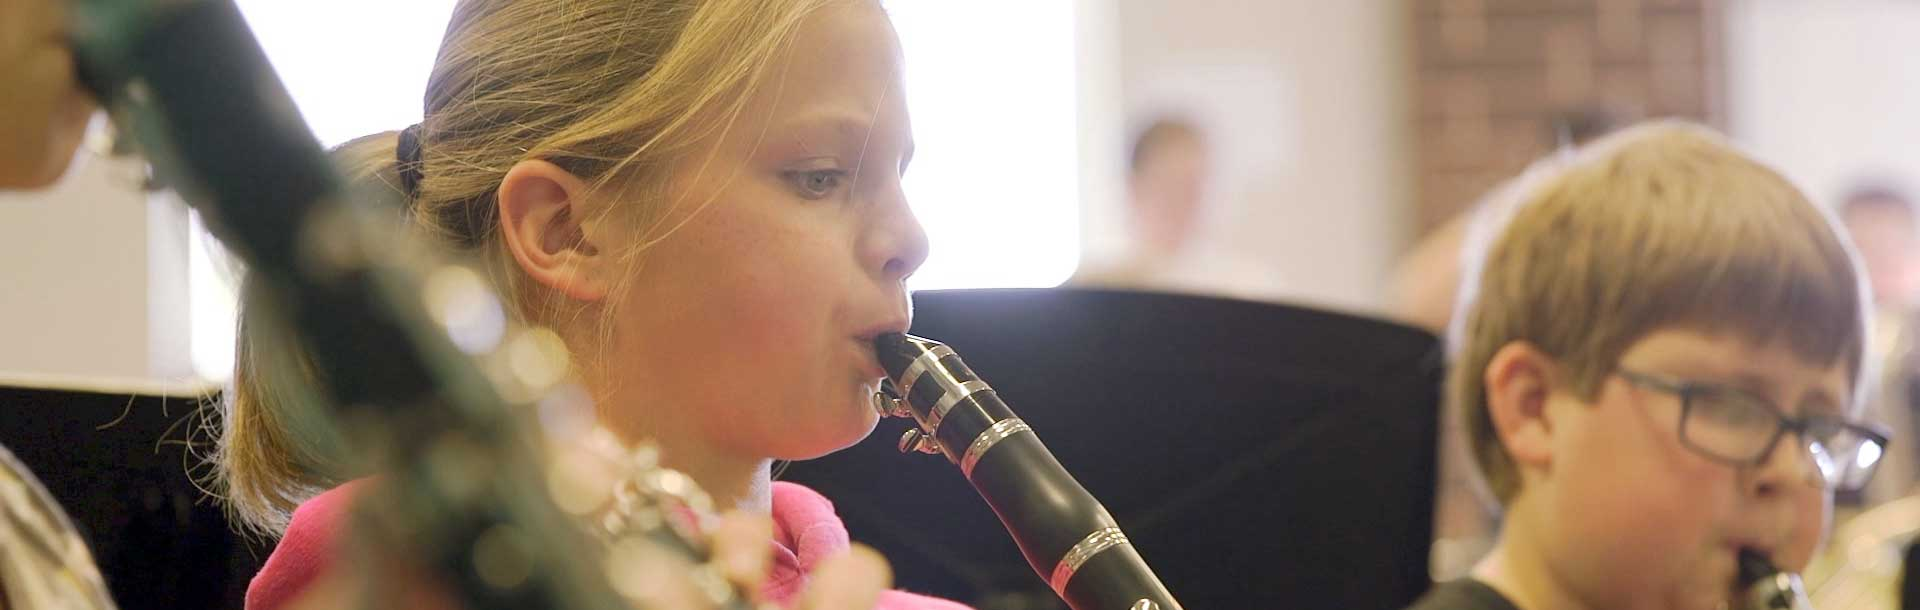 Student Playing Clarinet in Band Class